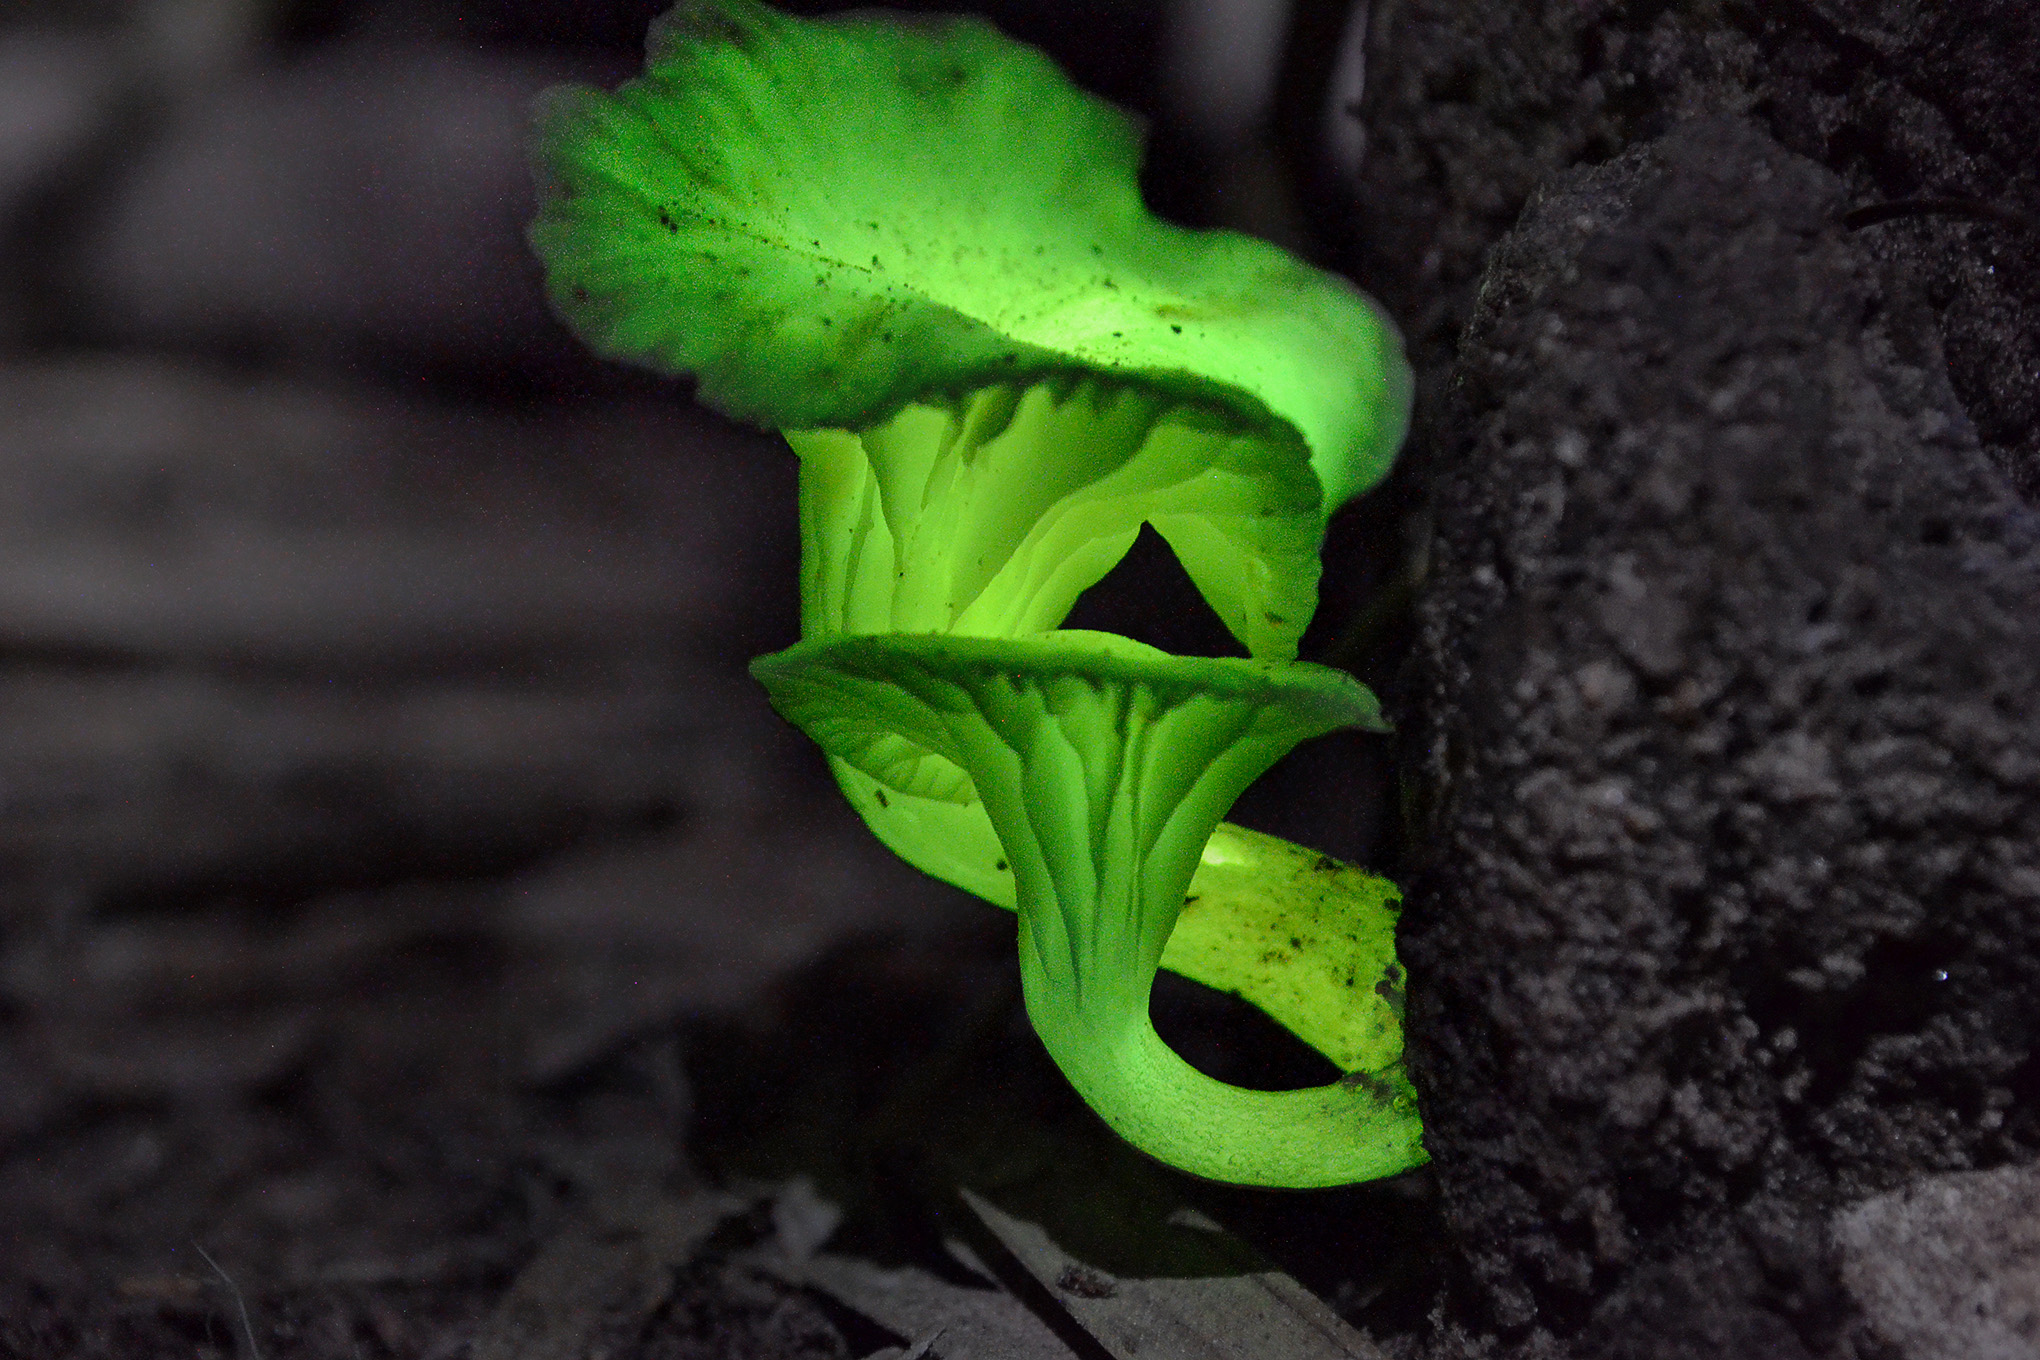 This photo composite shows Neonothopanus gardneri growing at the base of a tree.